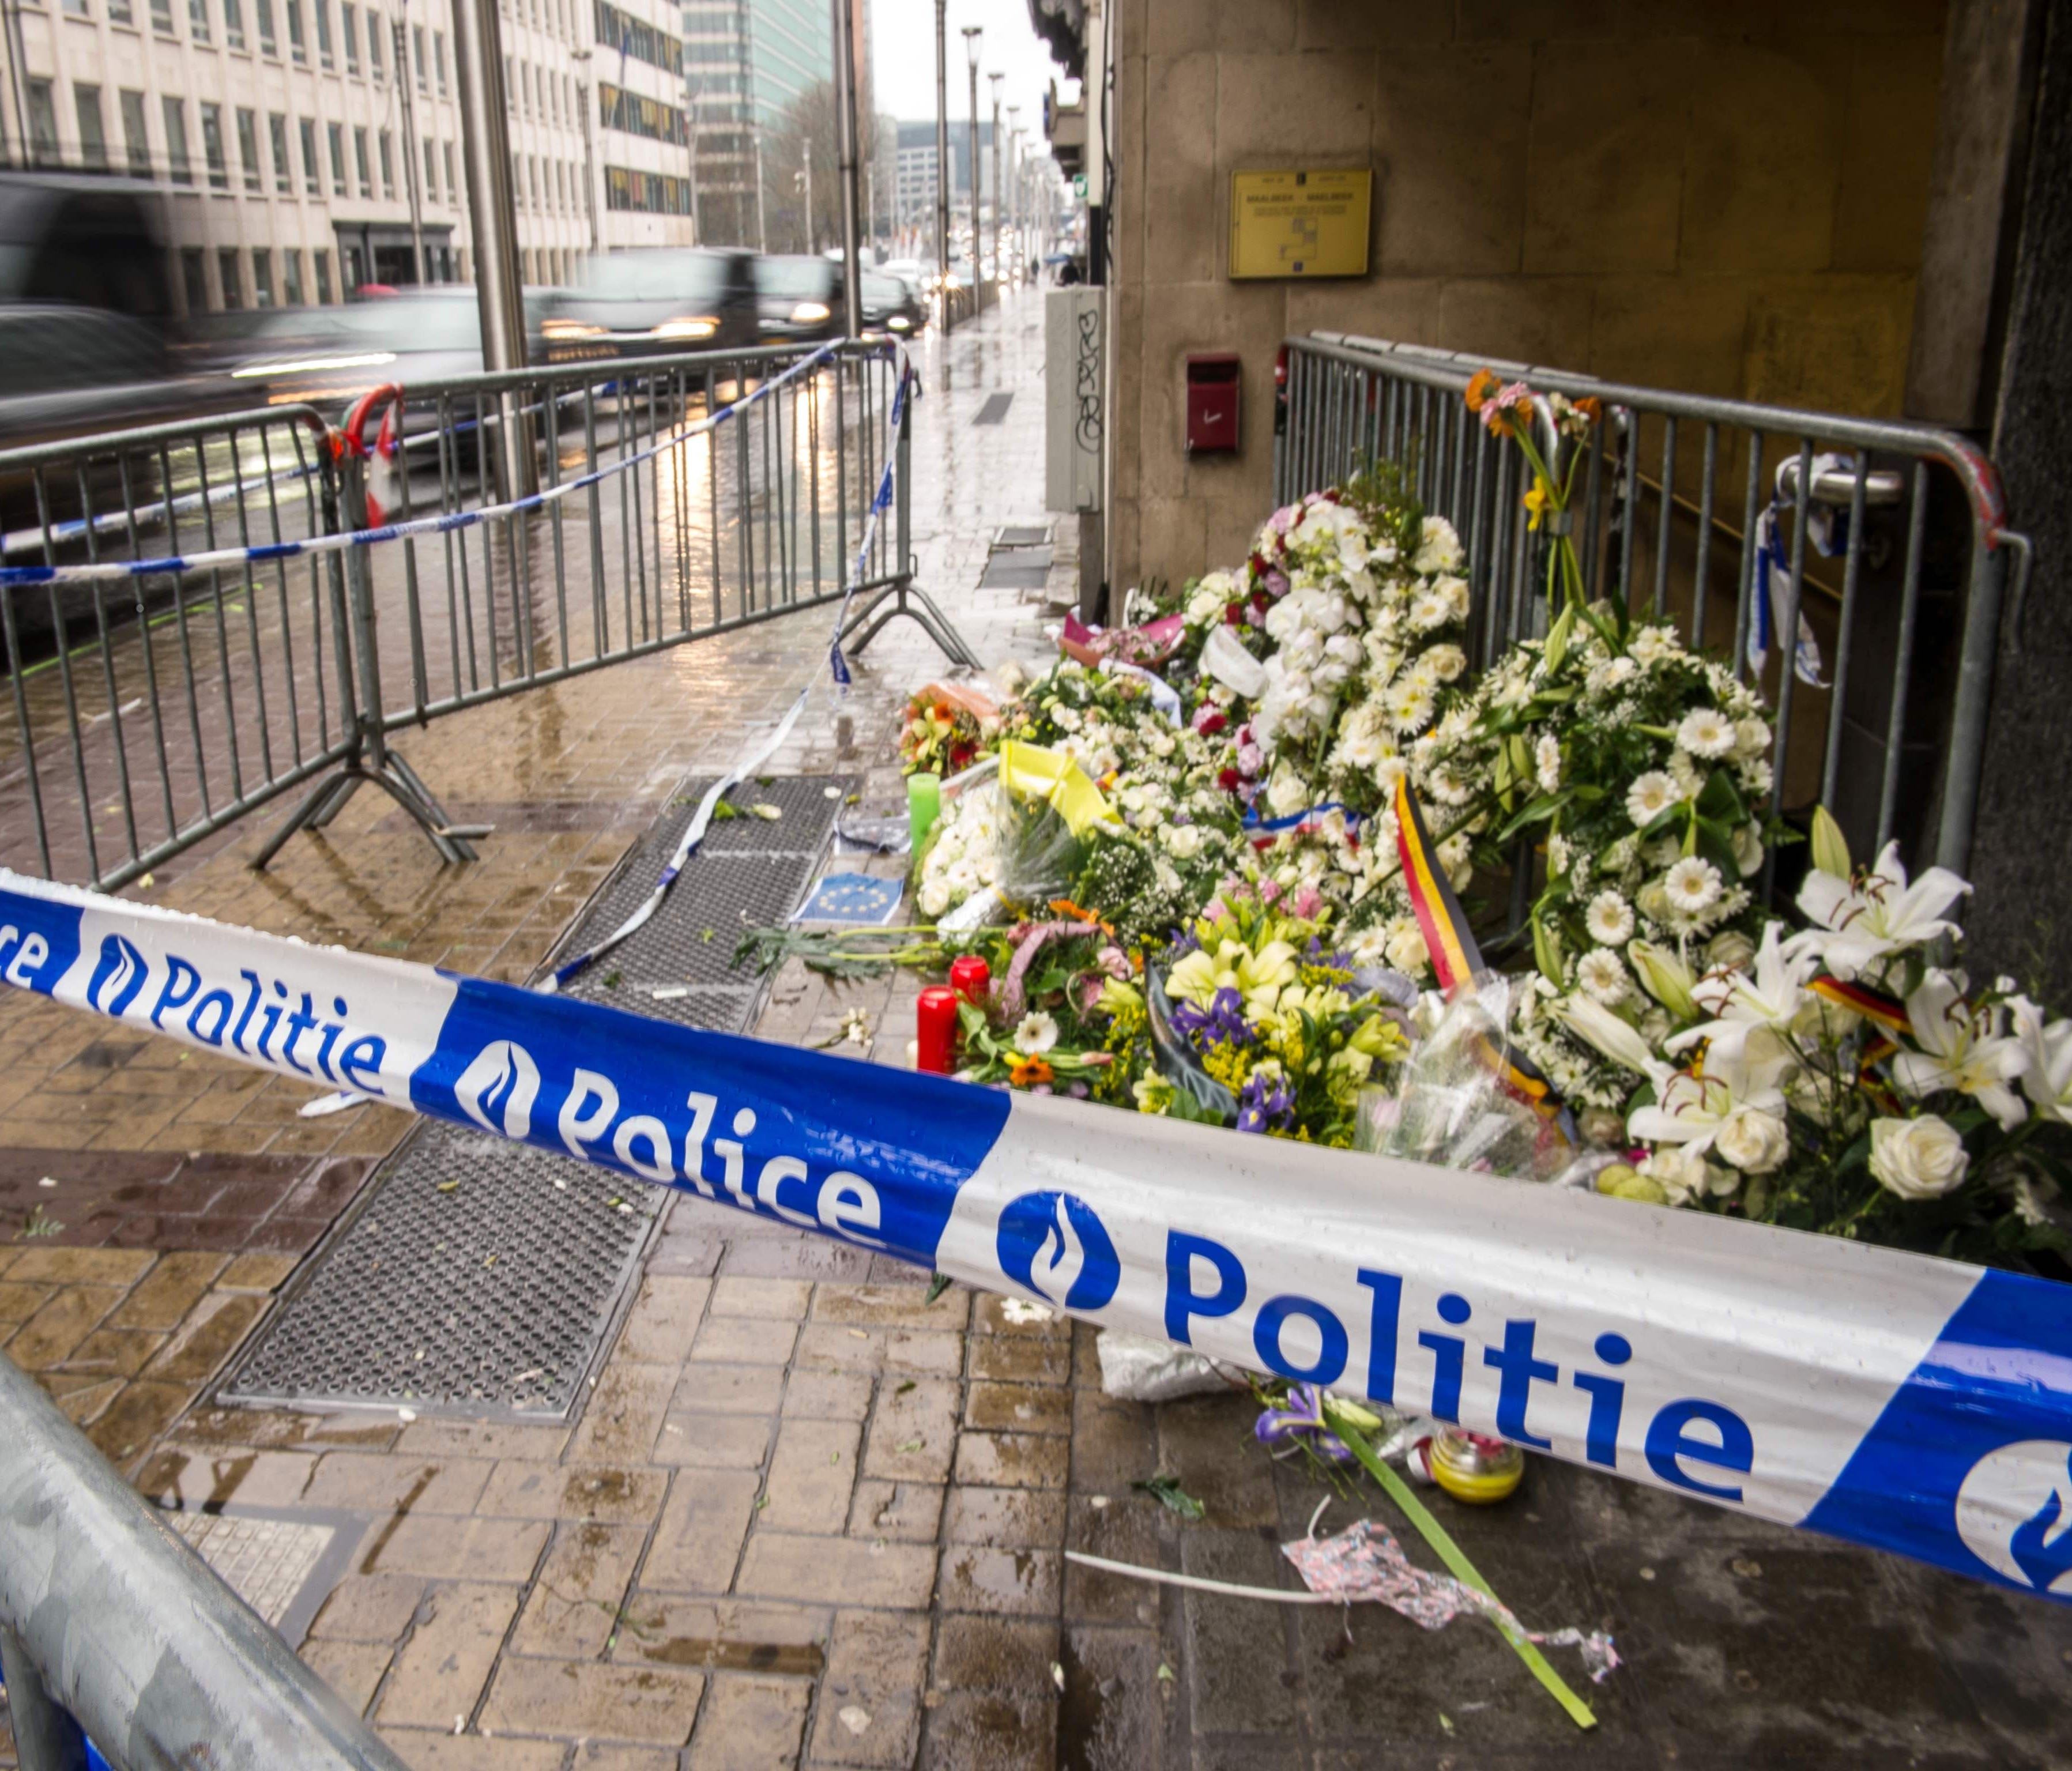 Hotel staff jumps into action after Brussels subway attack